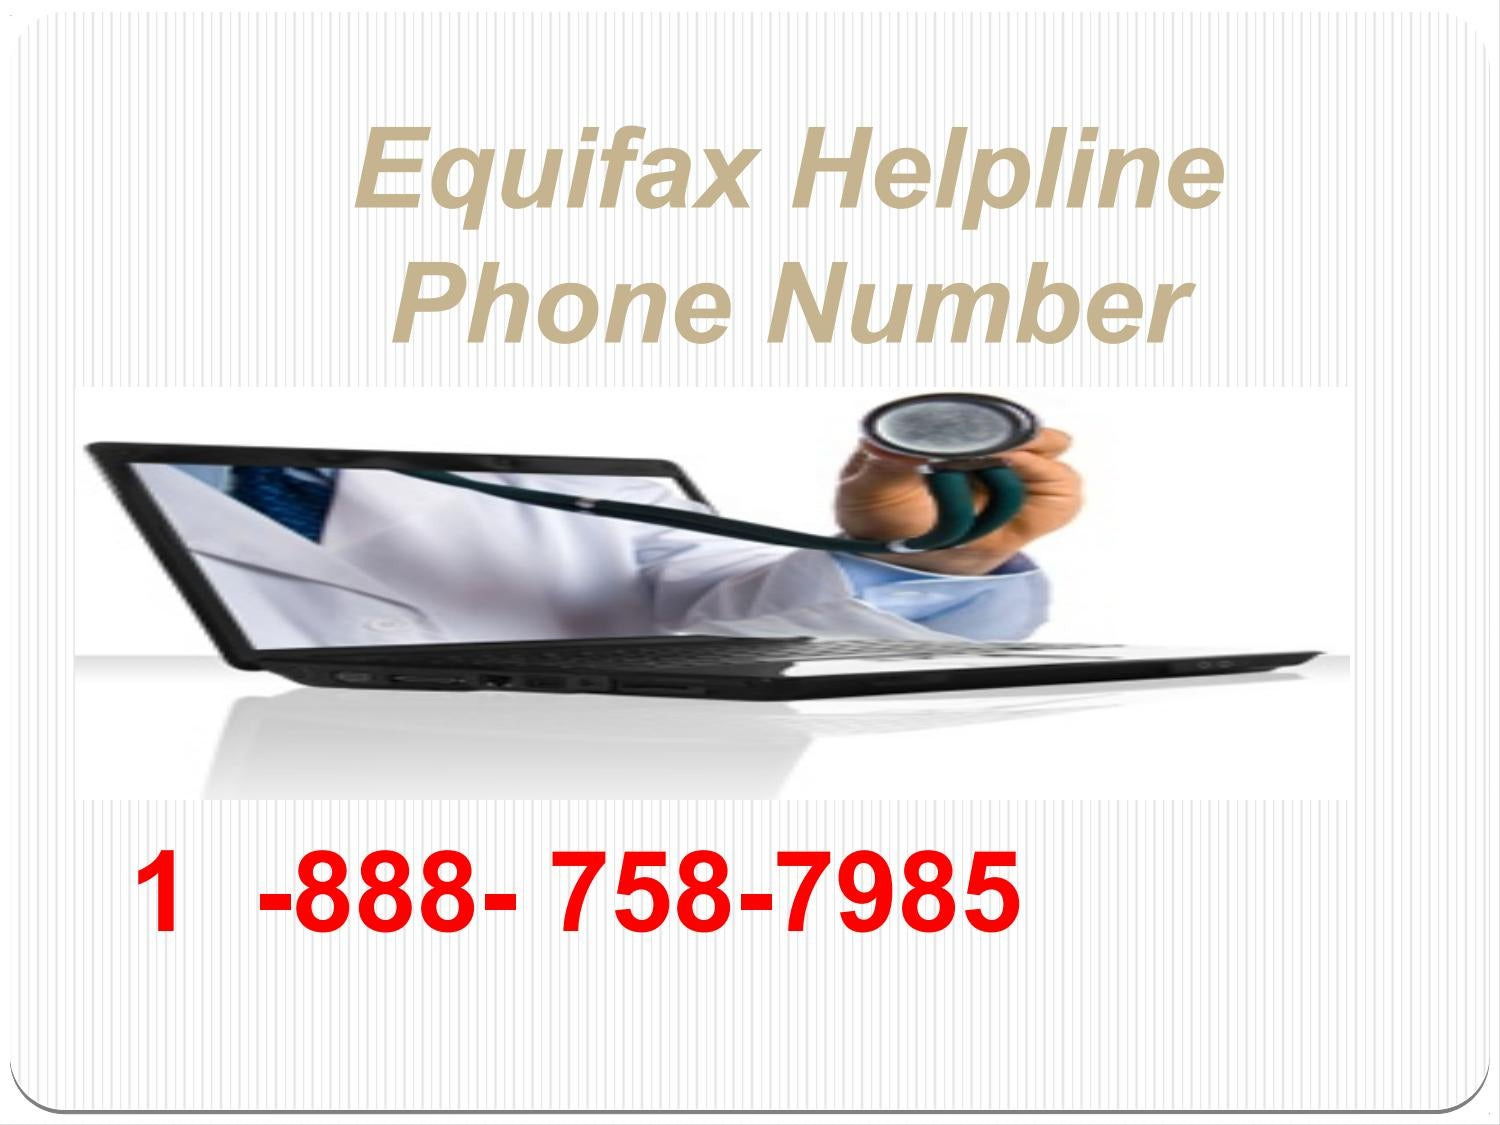 phone number for equifax